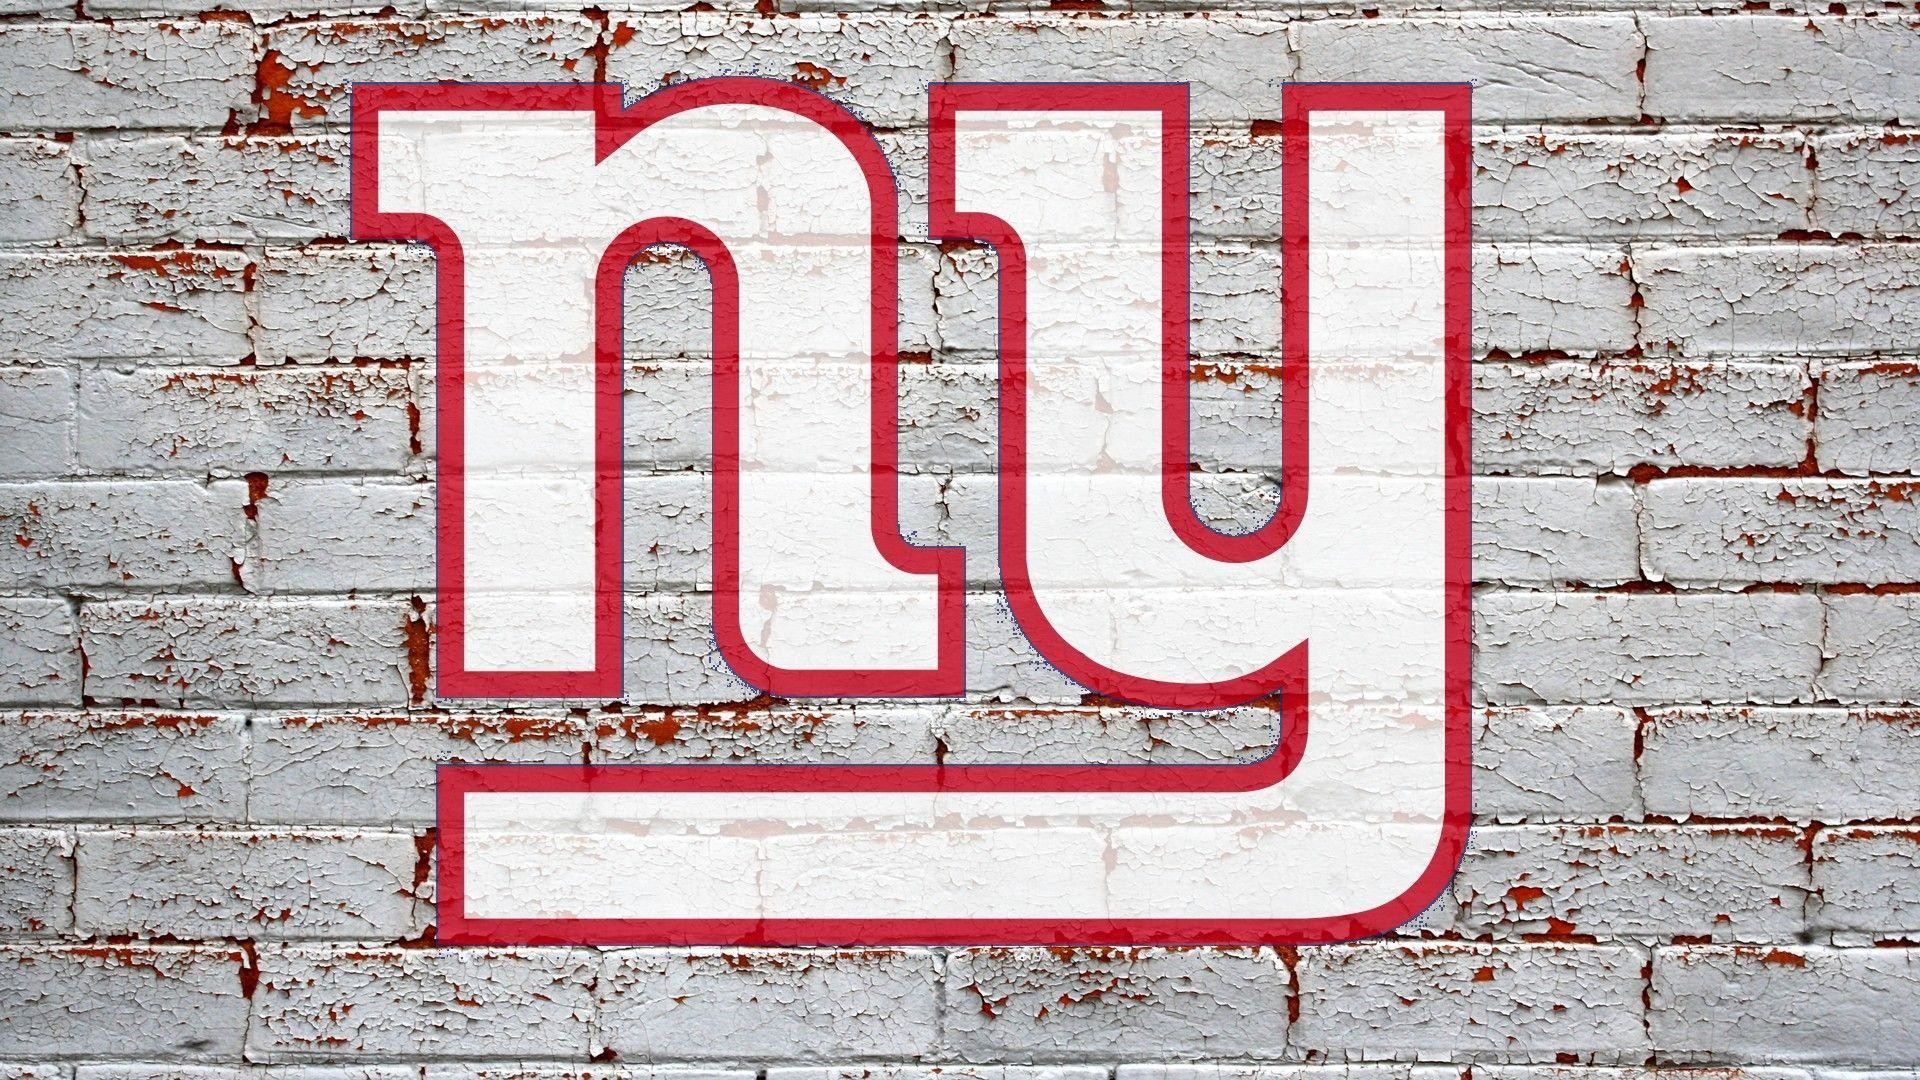 New York Giants Wallpaper HD | HD Wallpapers, Backgrounds, Images .